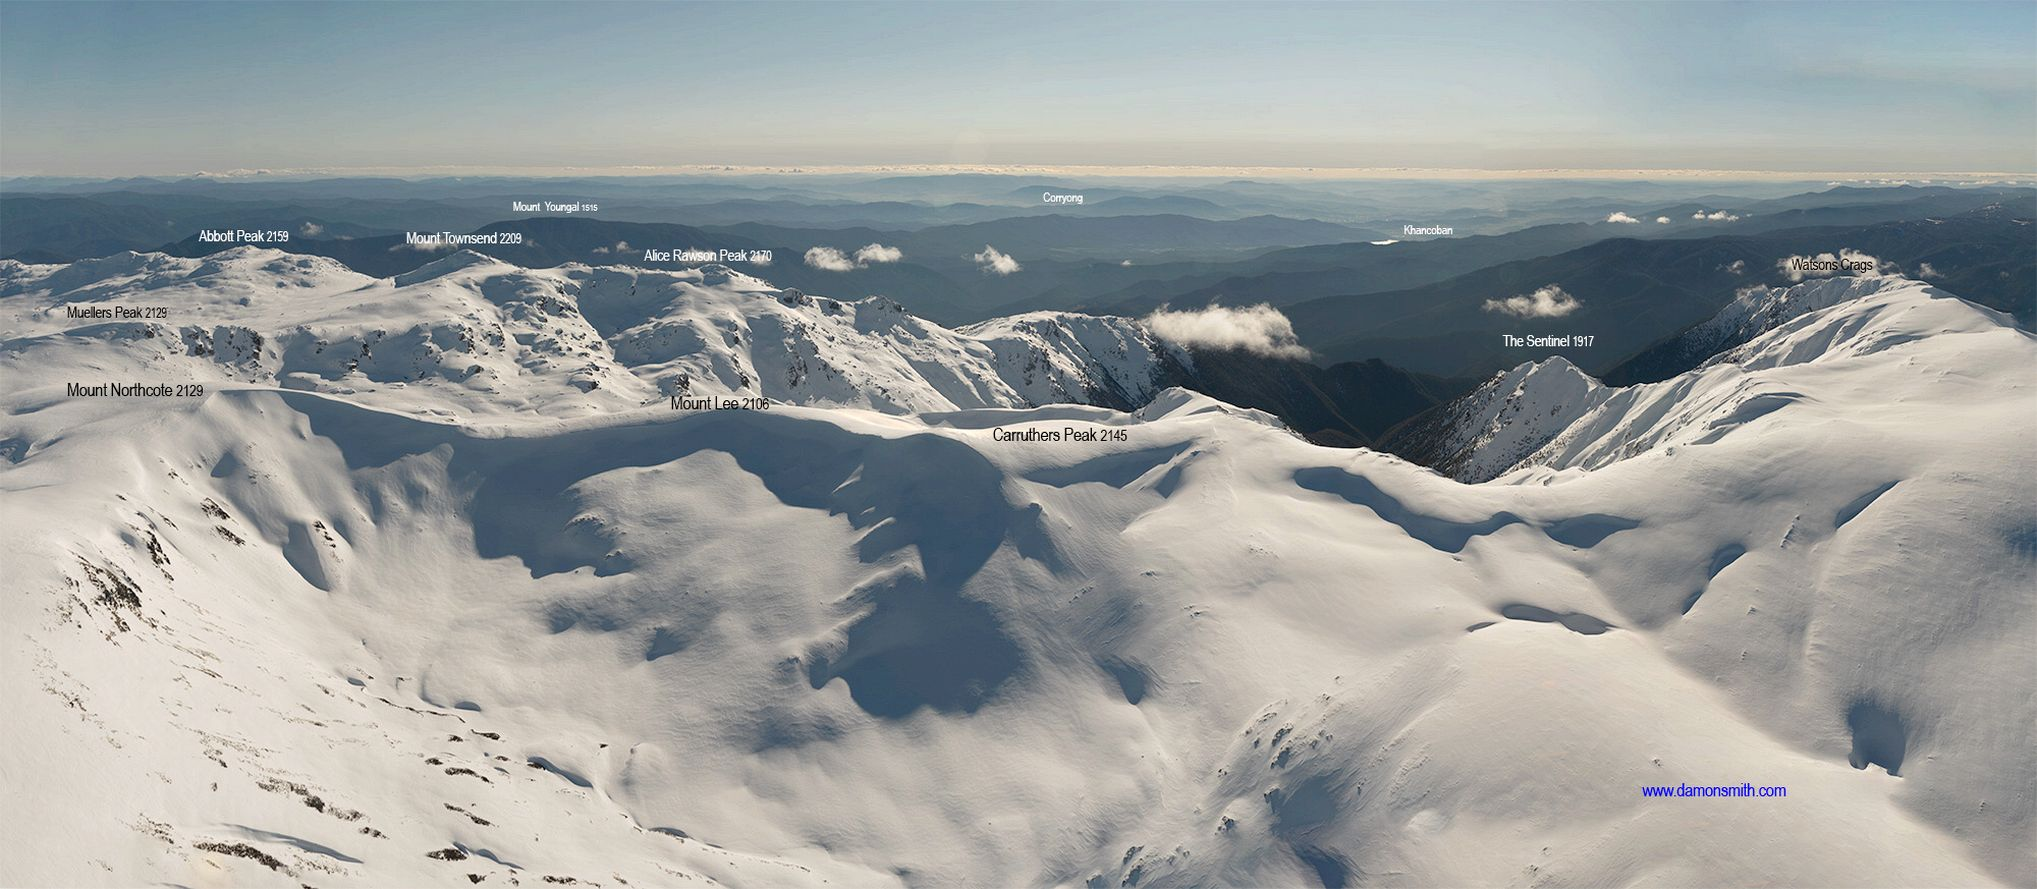 Snowy Mountains Panorama 3 -4613-4625